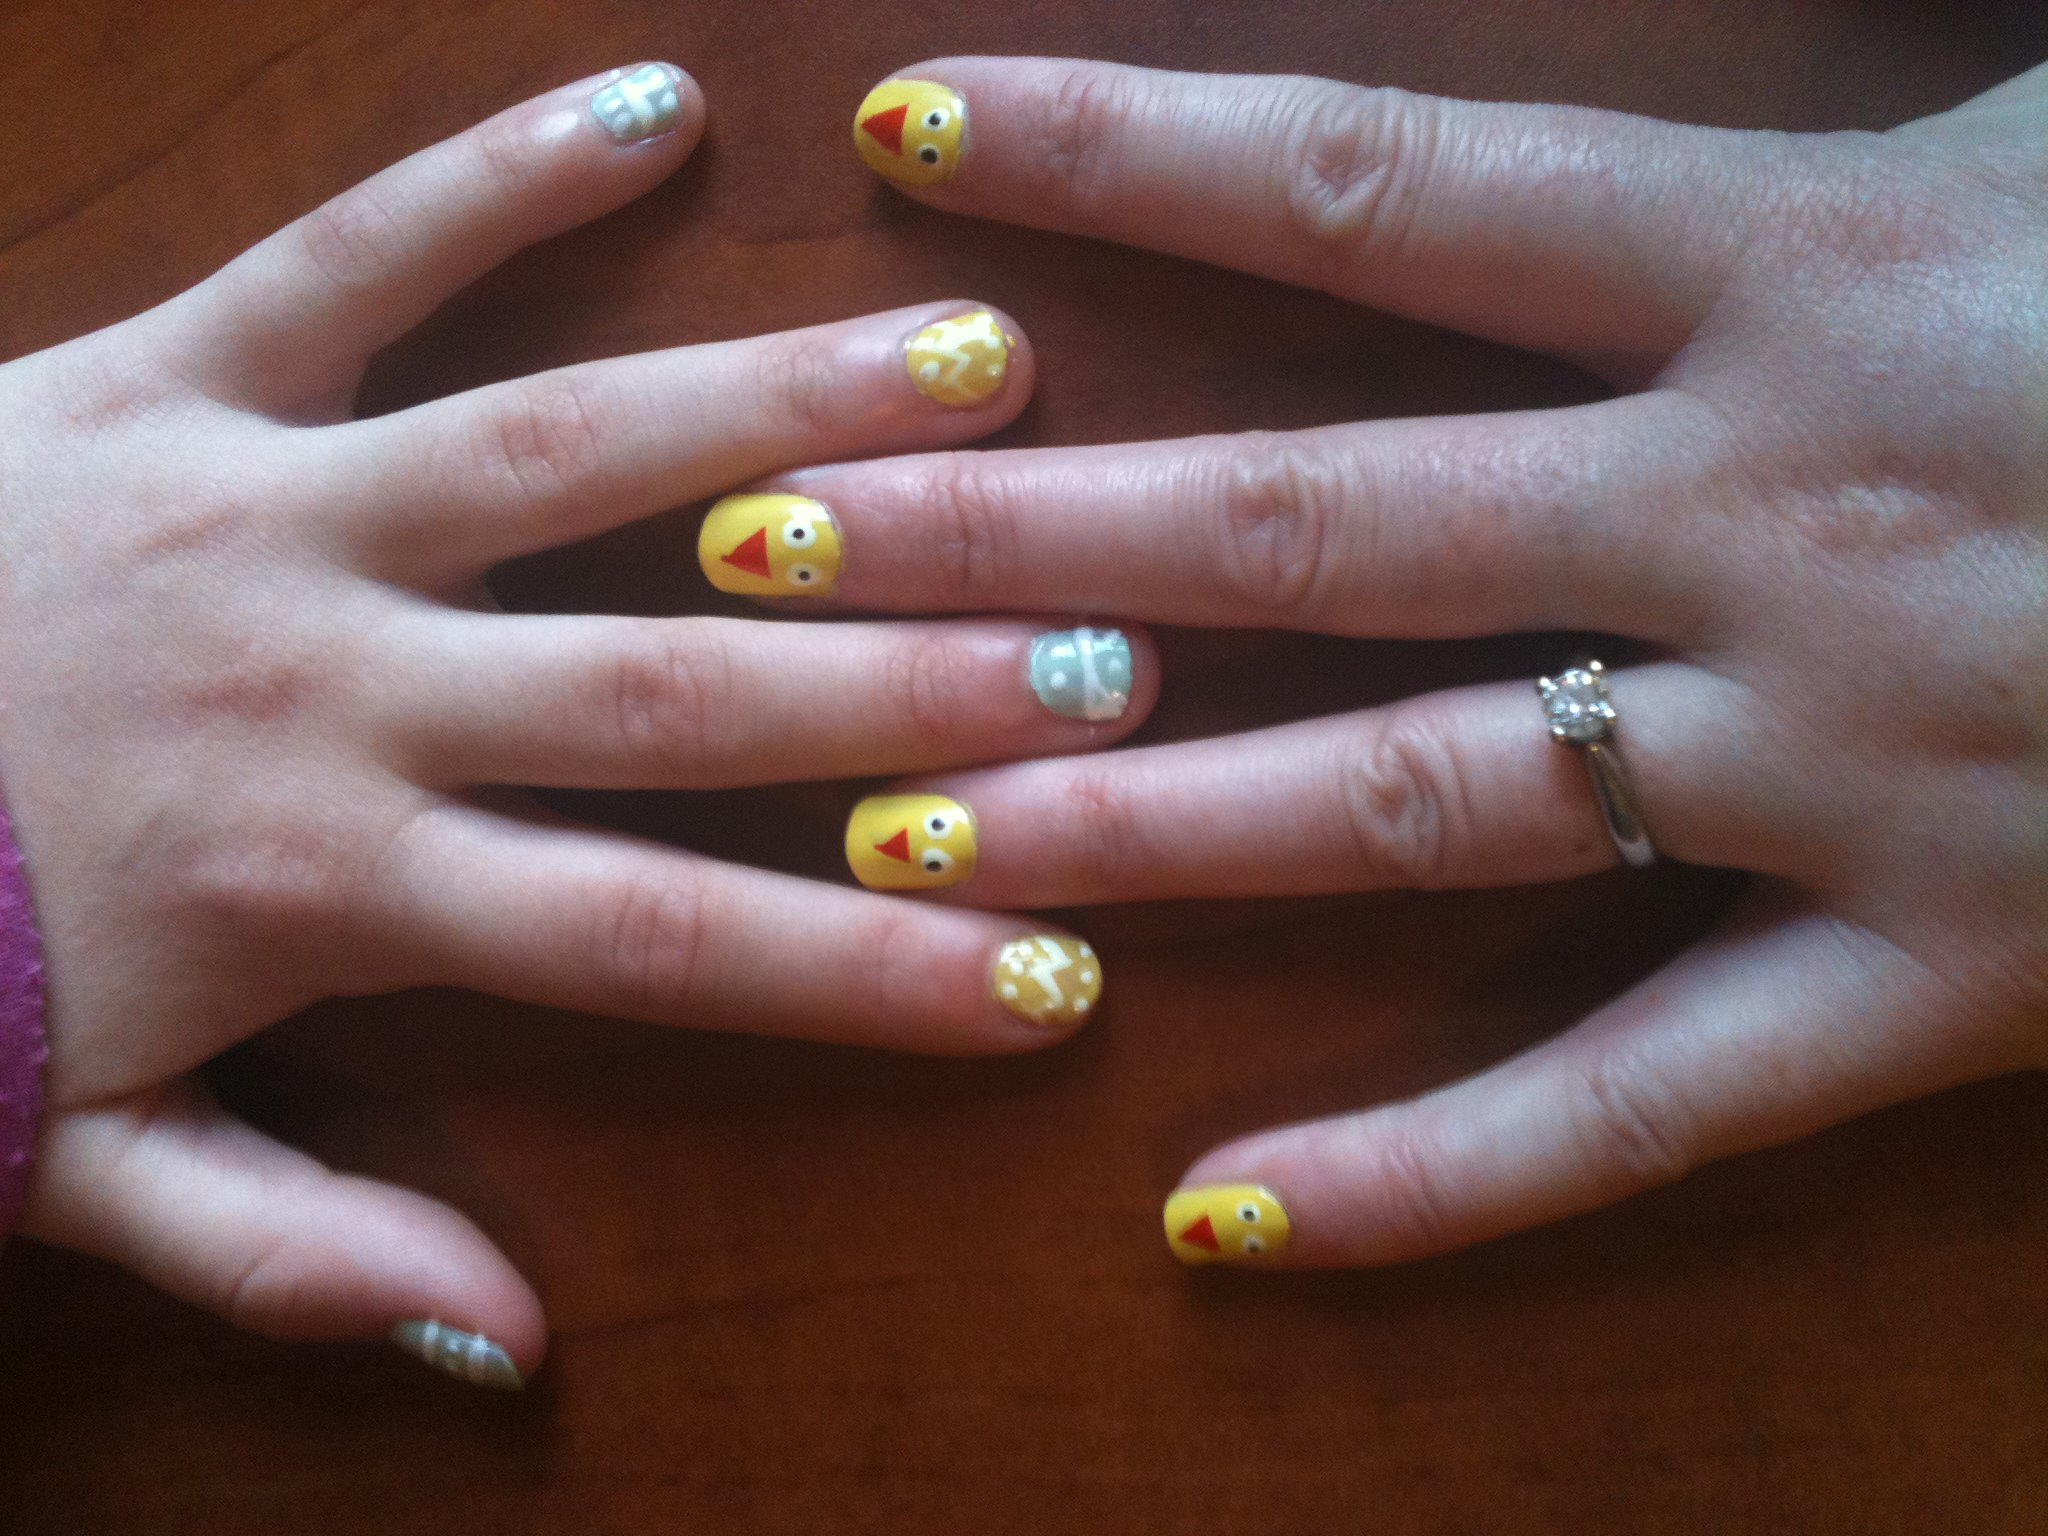 Easter Fun - Nail Art for Adults and Kids